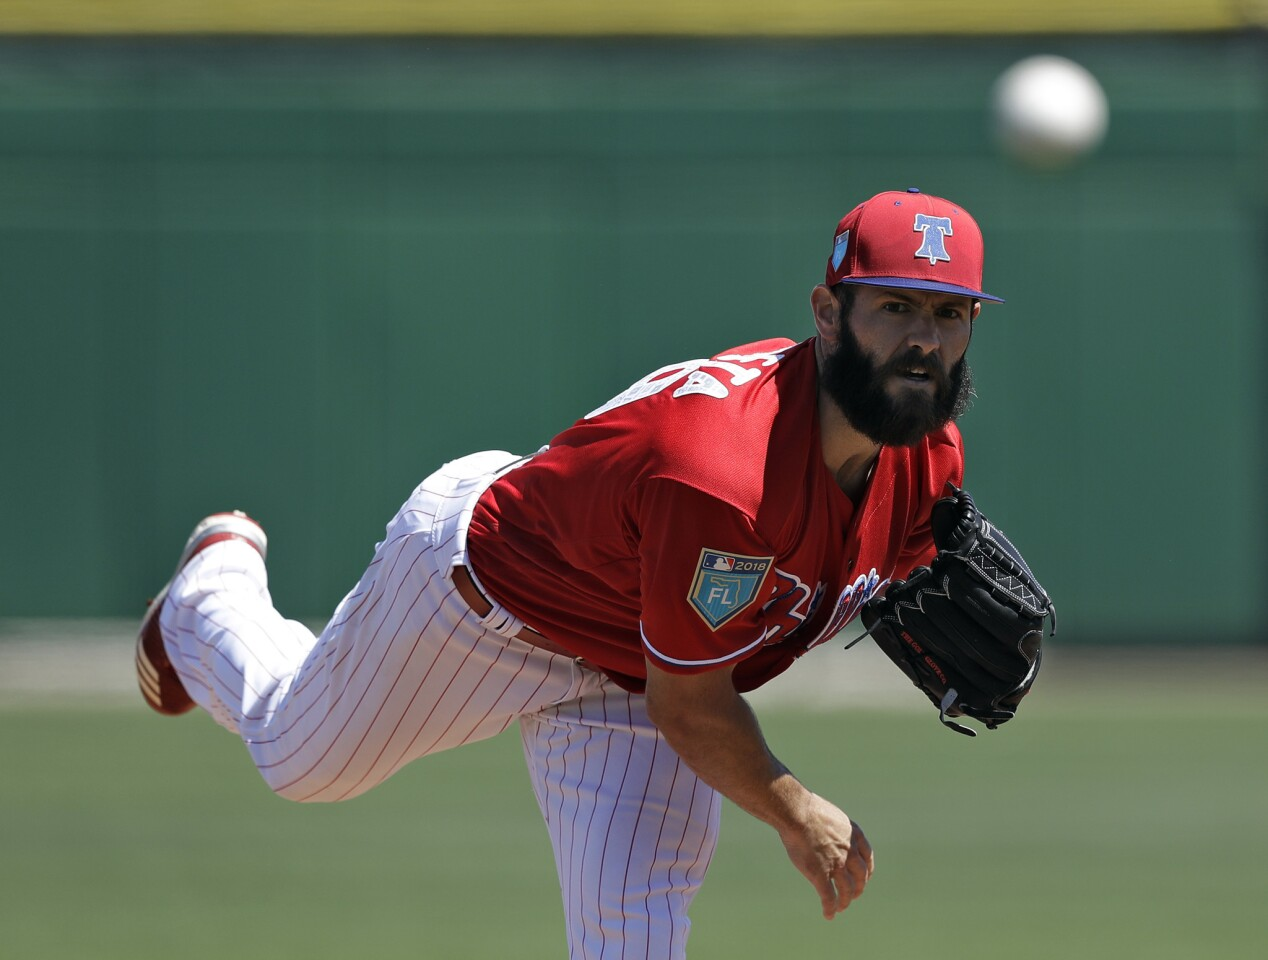 Phillies starting pitcher Jake Arrieta warms up before a spring training game against the Tigers on March 22, 2018, in Clearwater, Fla.